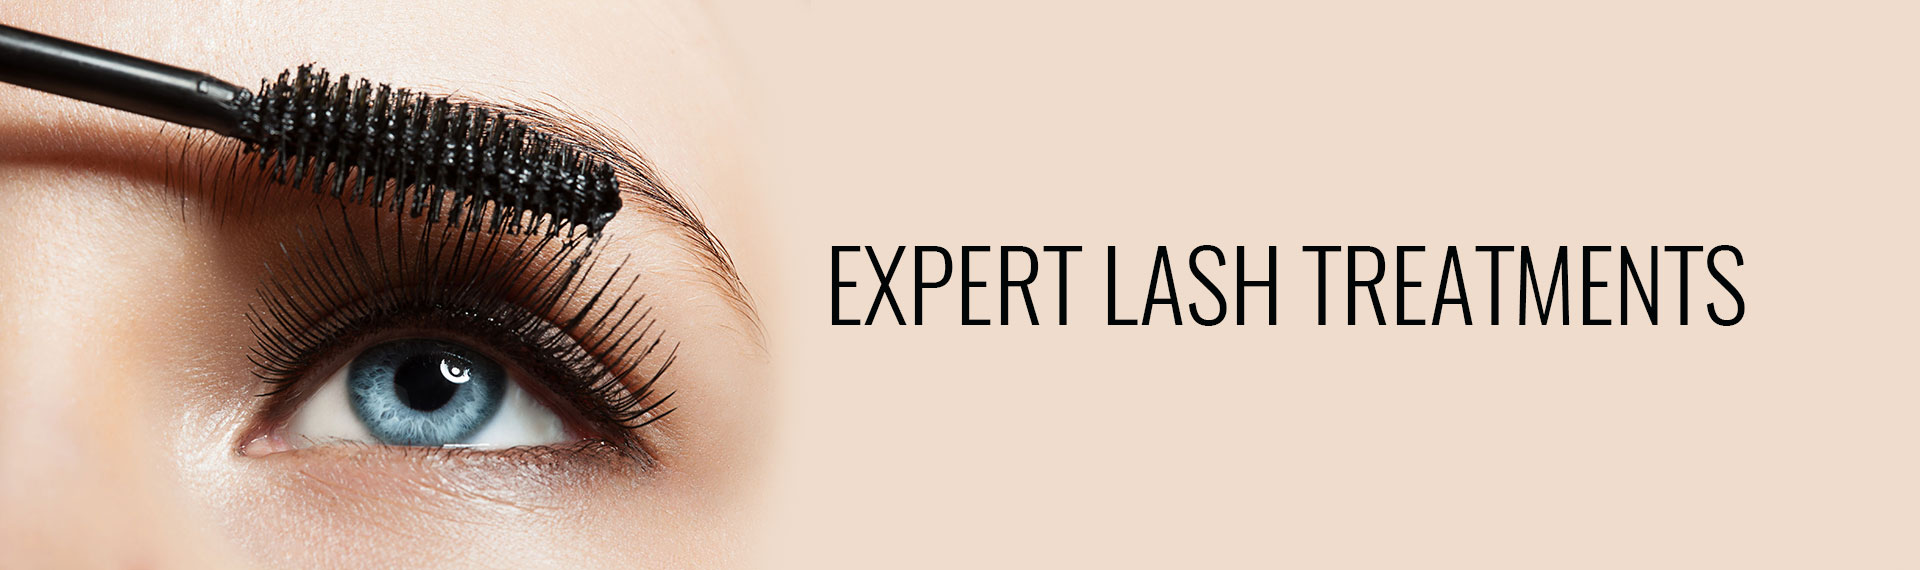 Expert Lash Treatments inner banner